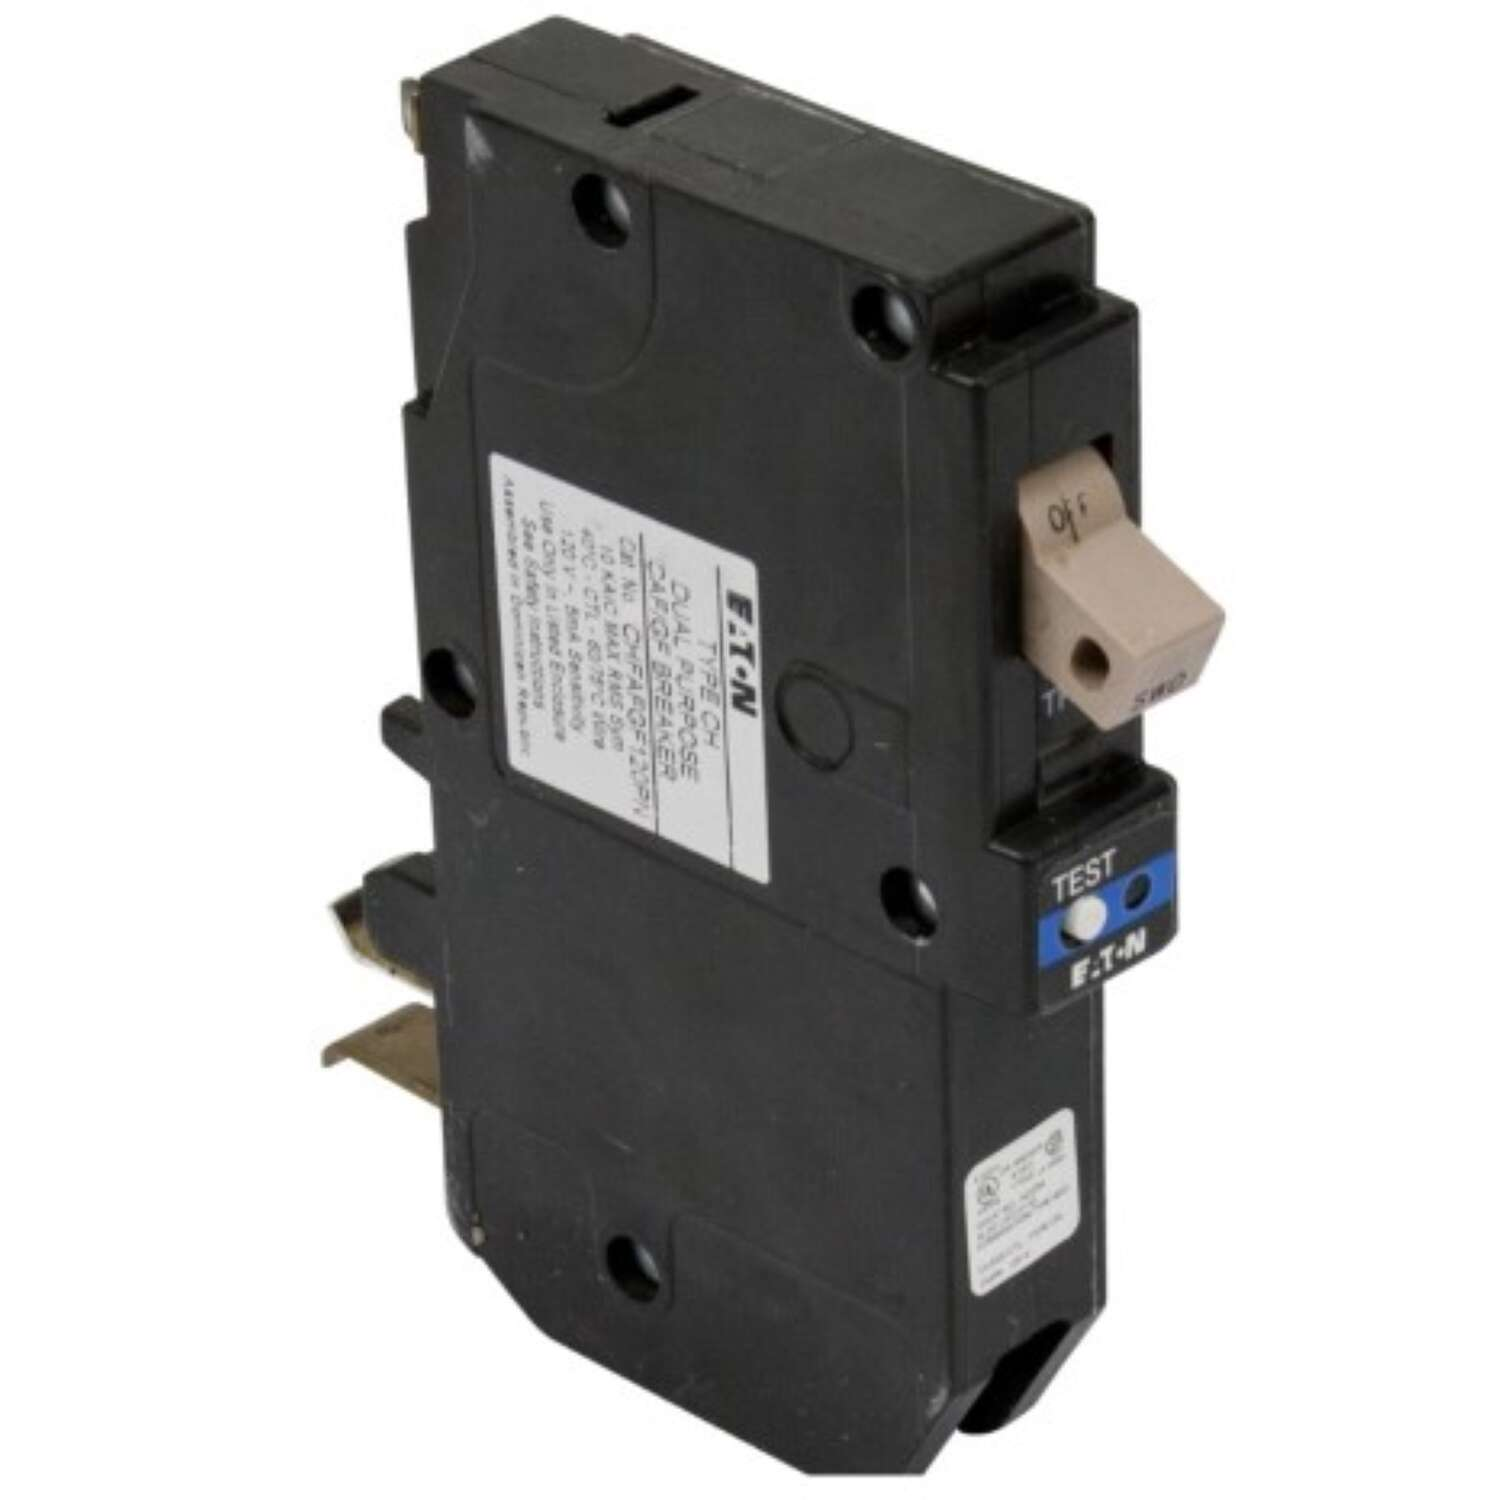 Eaton  15 amps Arc Fault/Ground Fault  Single Pole  Circuit Breaker